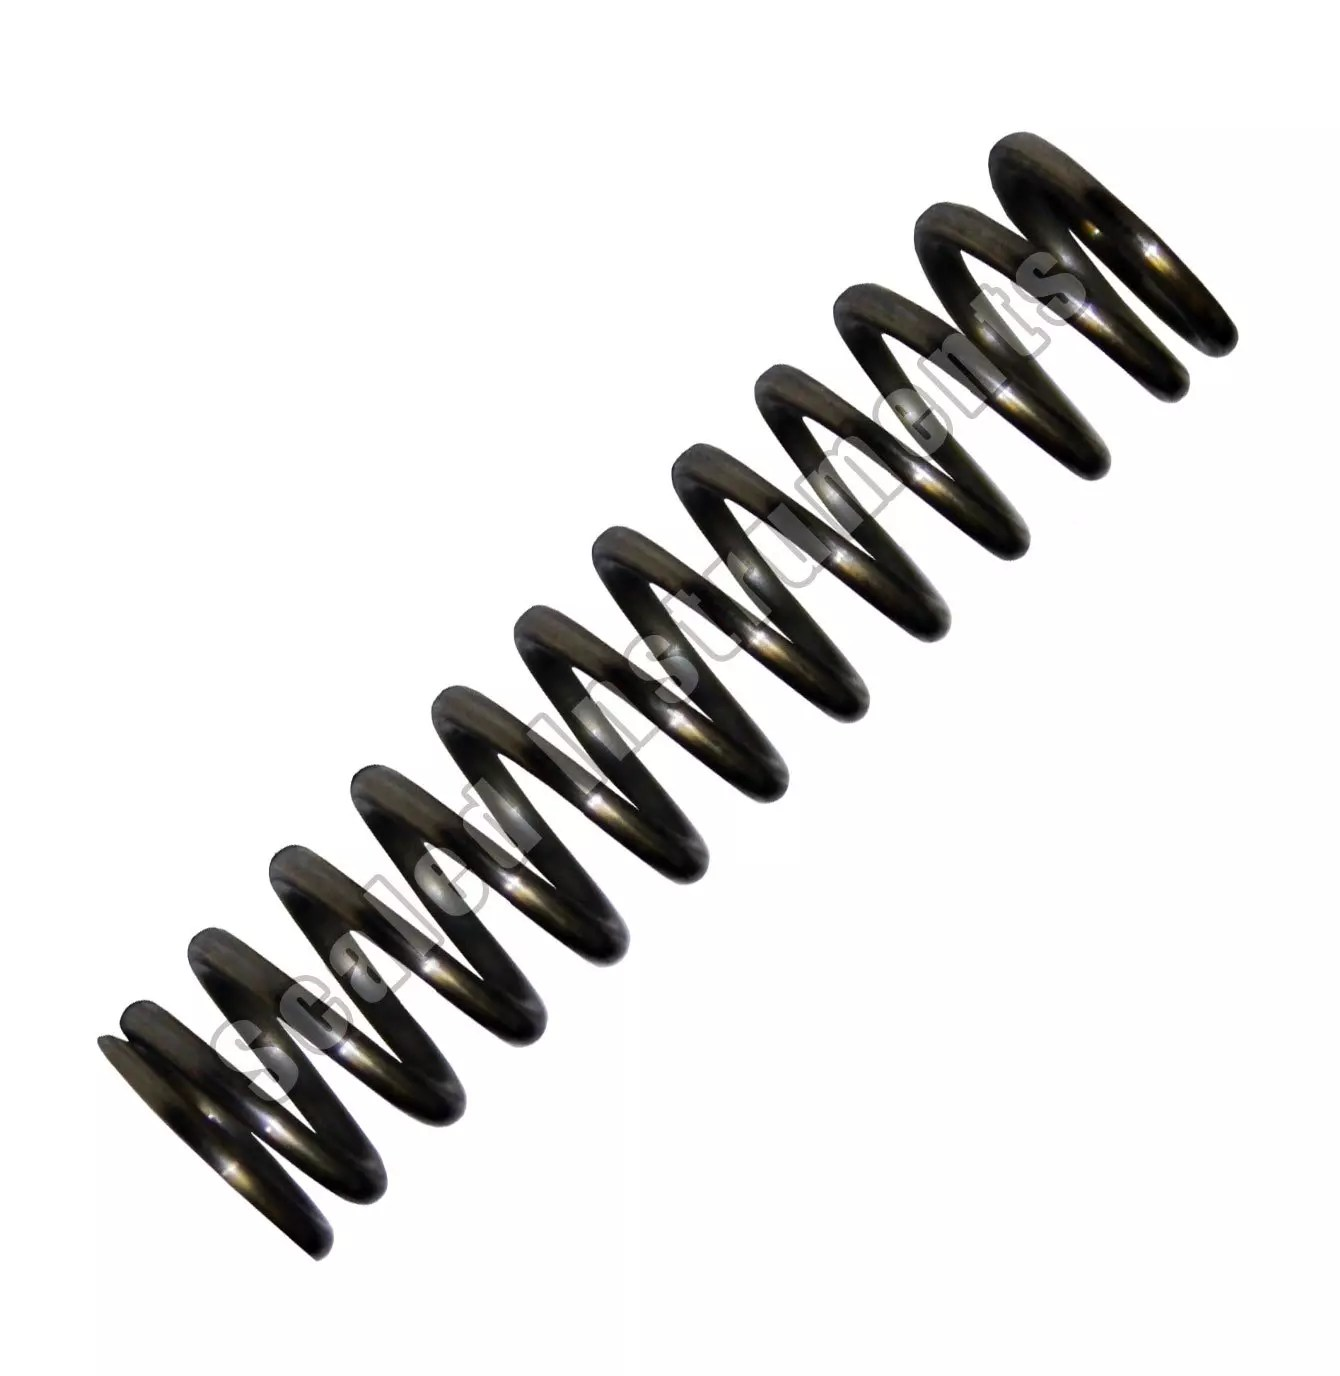 Davis 320 Stainless Steel Compression Spring For Uv